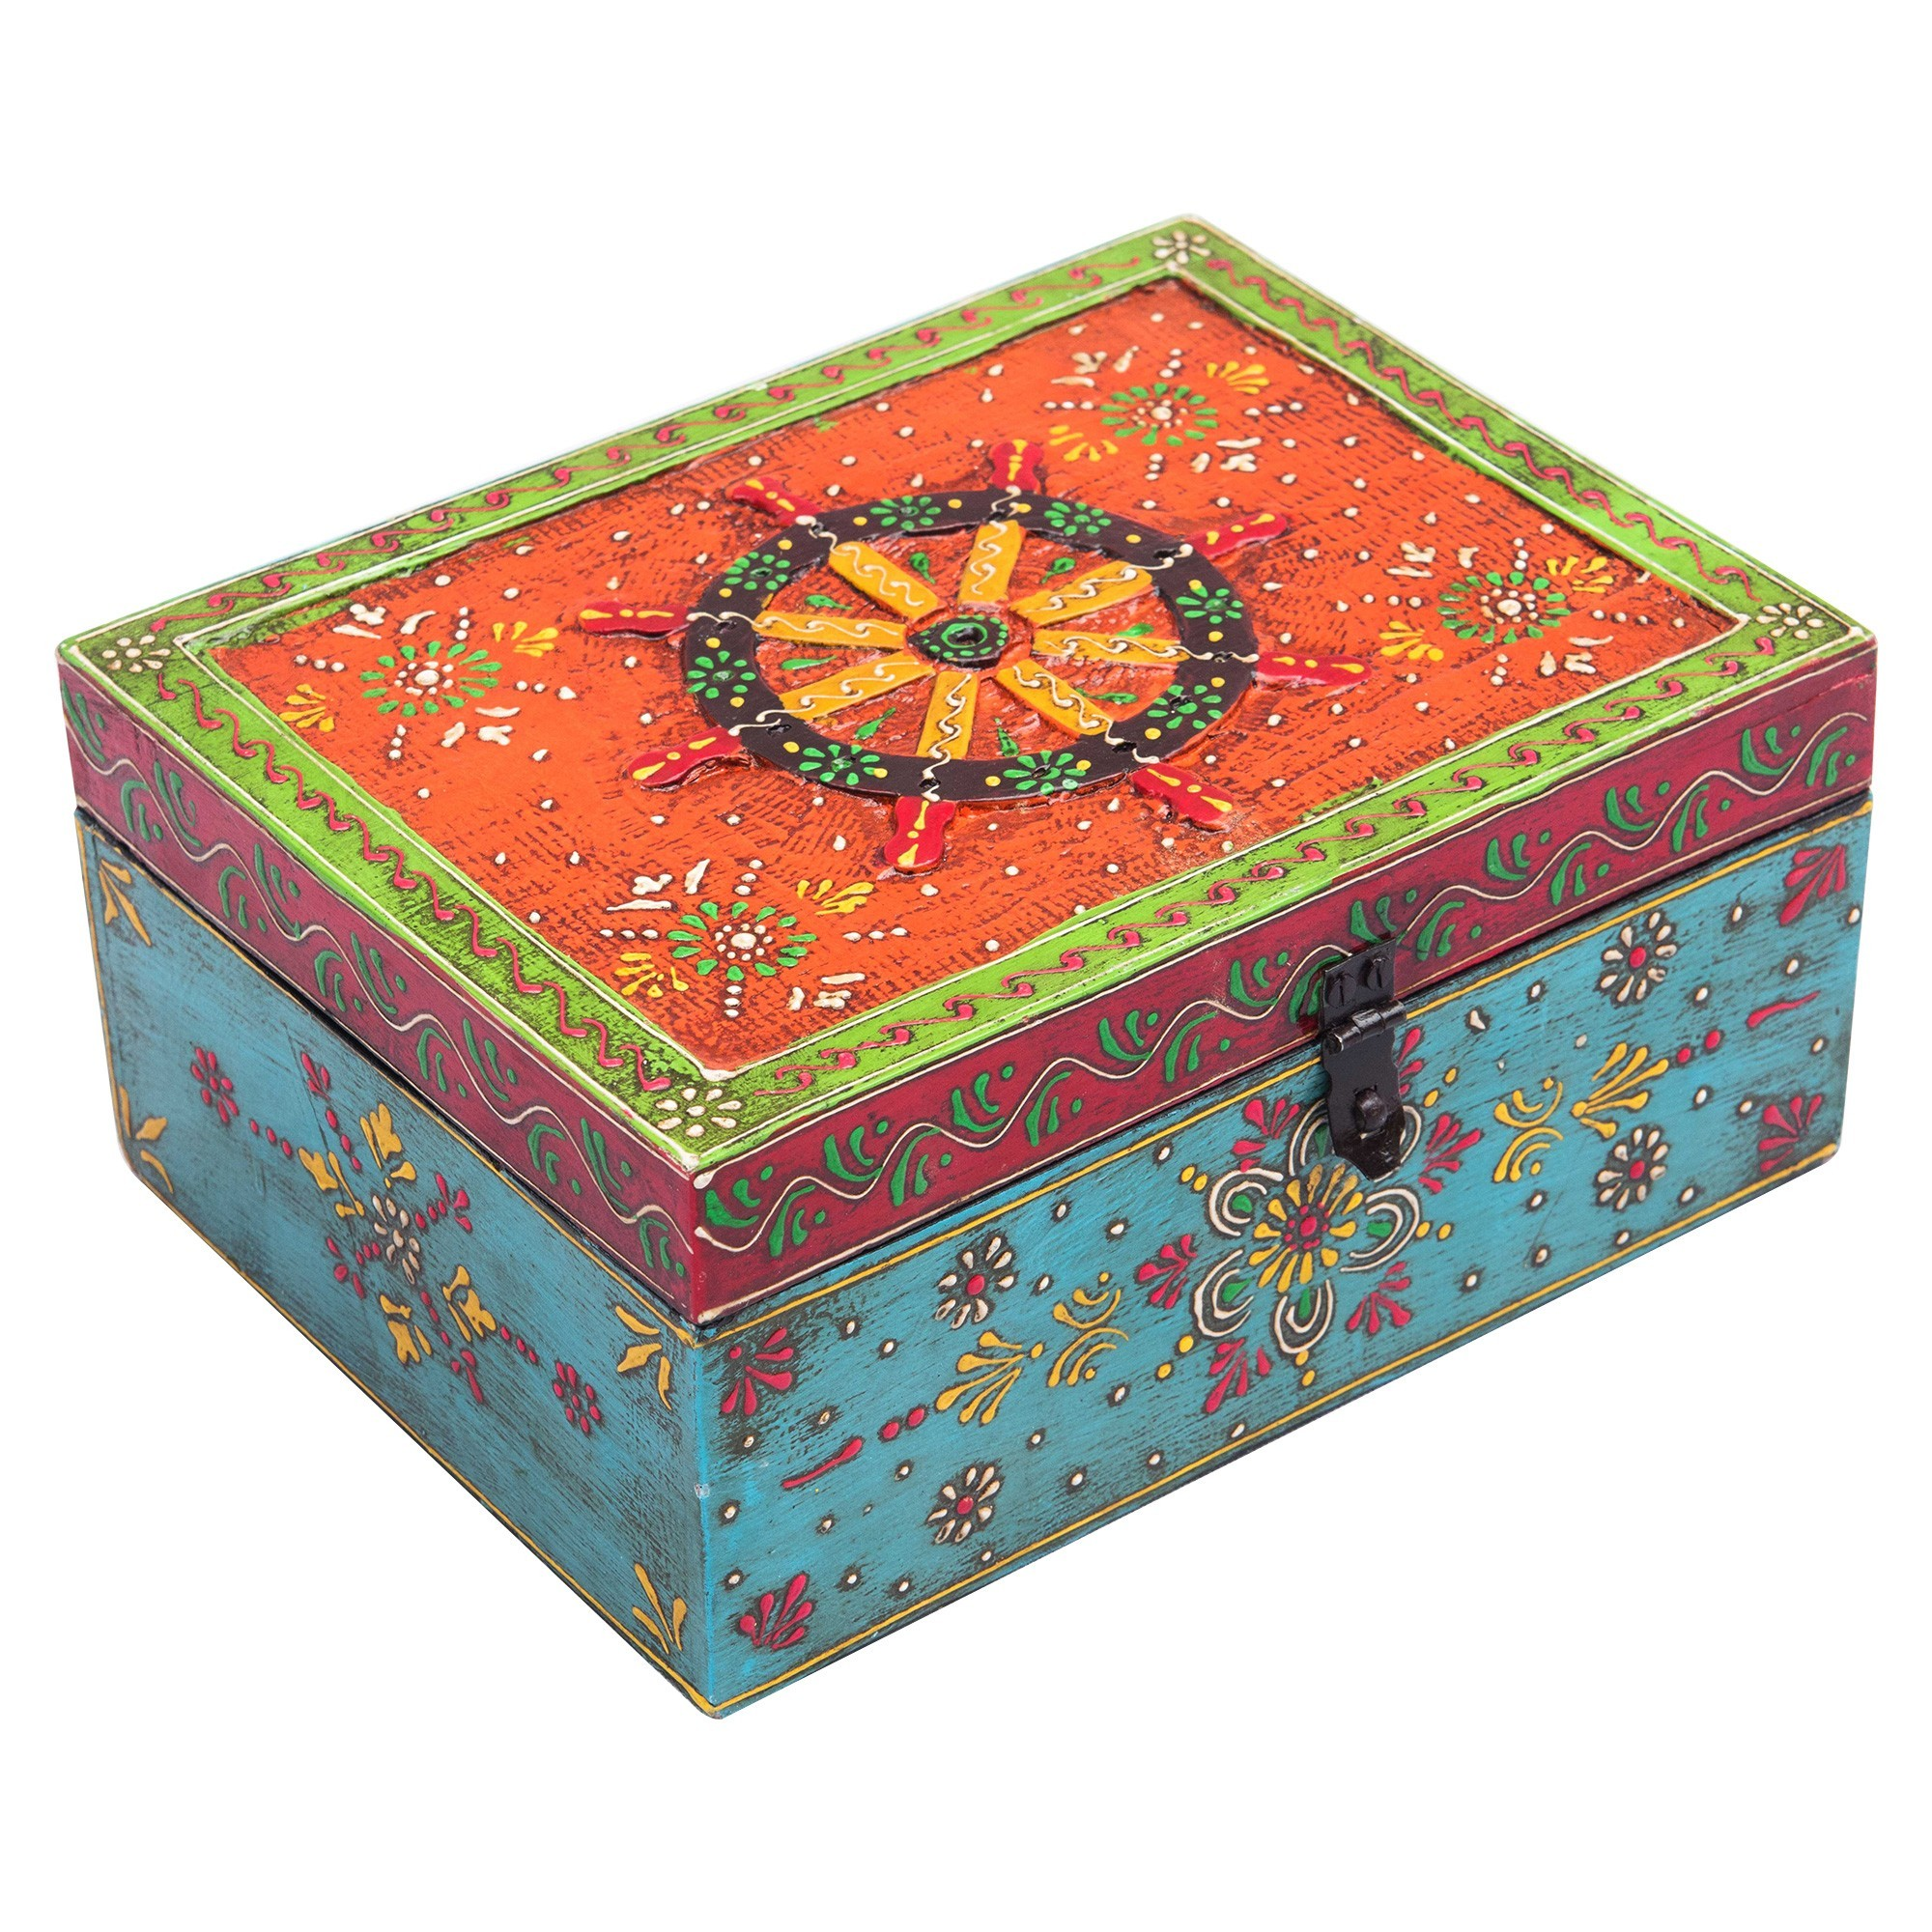 Pistra Painted Wooden Storage Box